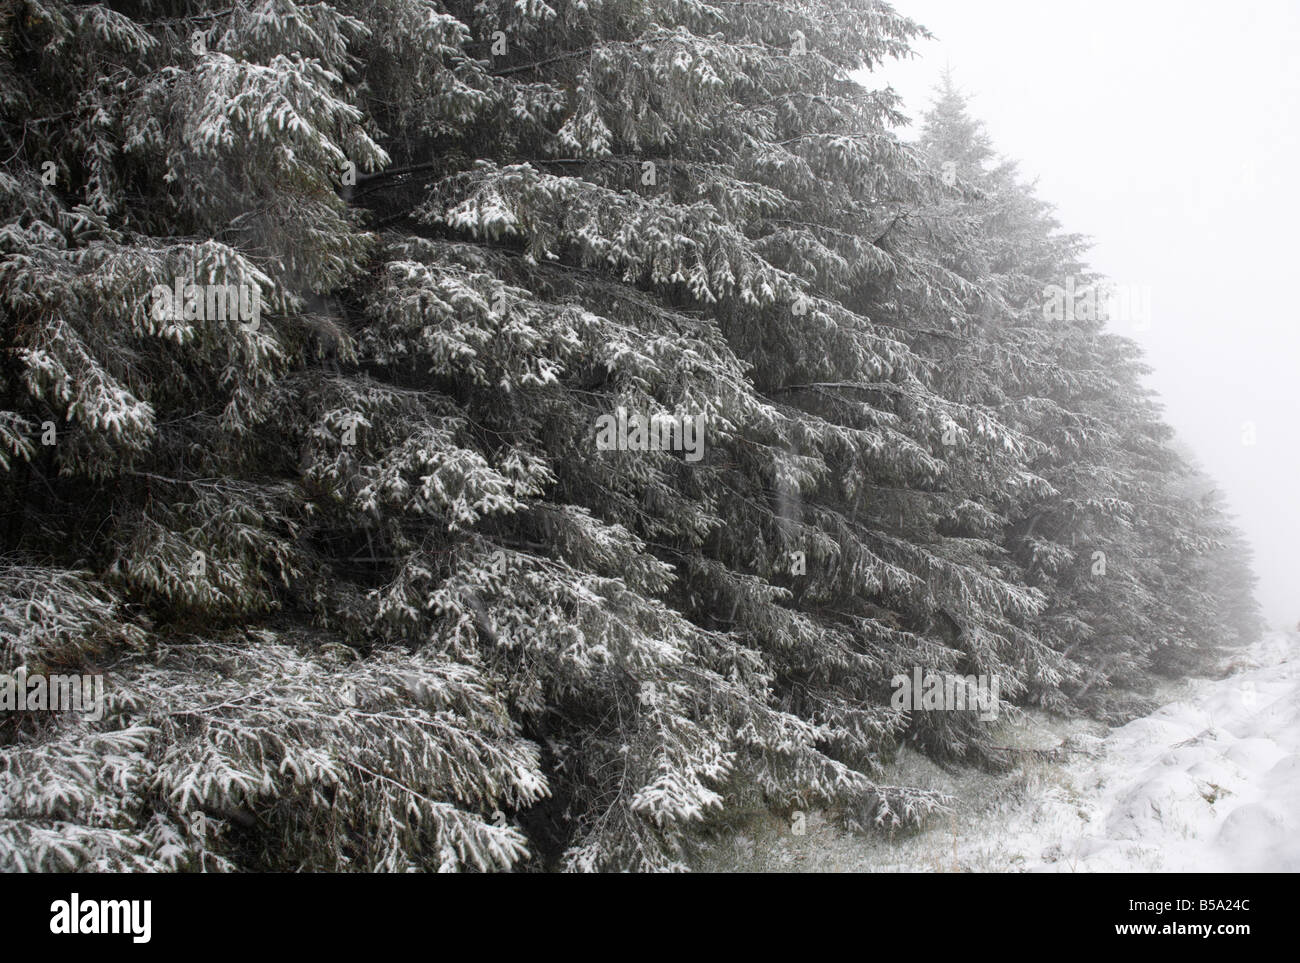 snow and ice covering conifer trees in a forest county antrim northern ireland uk - Stock Image